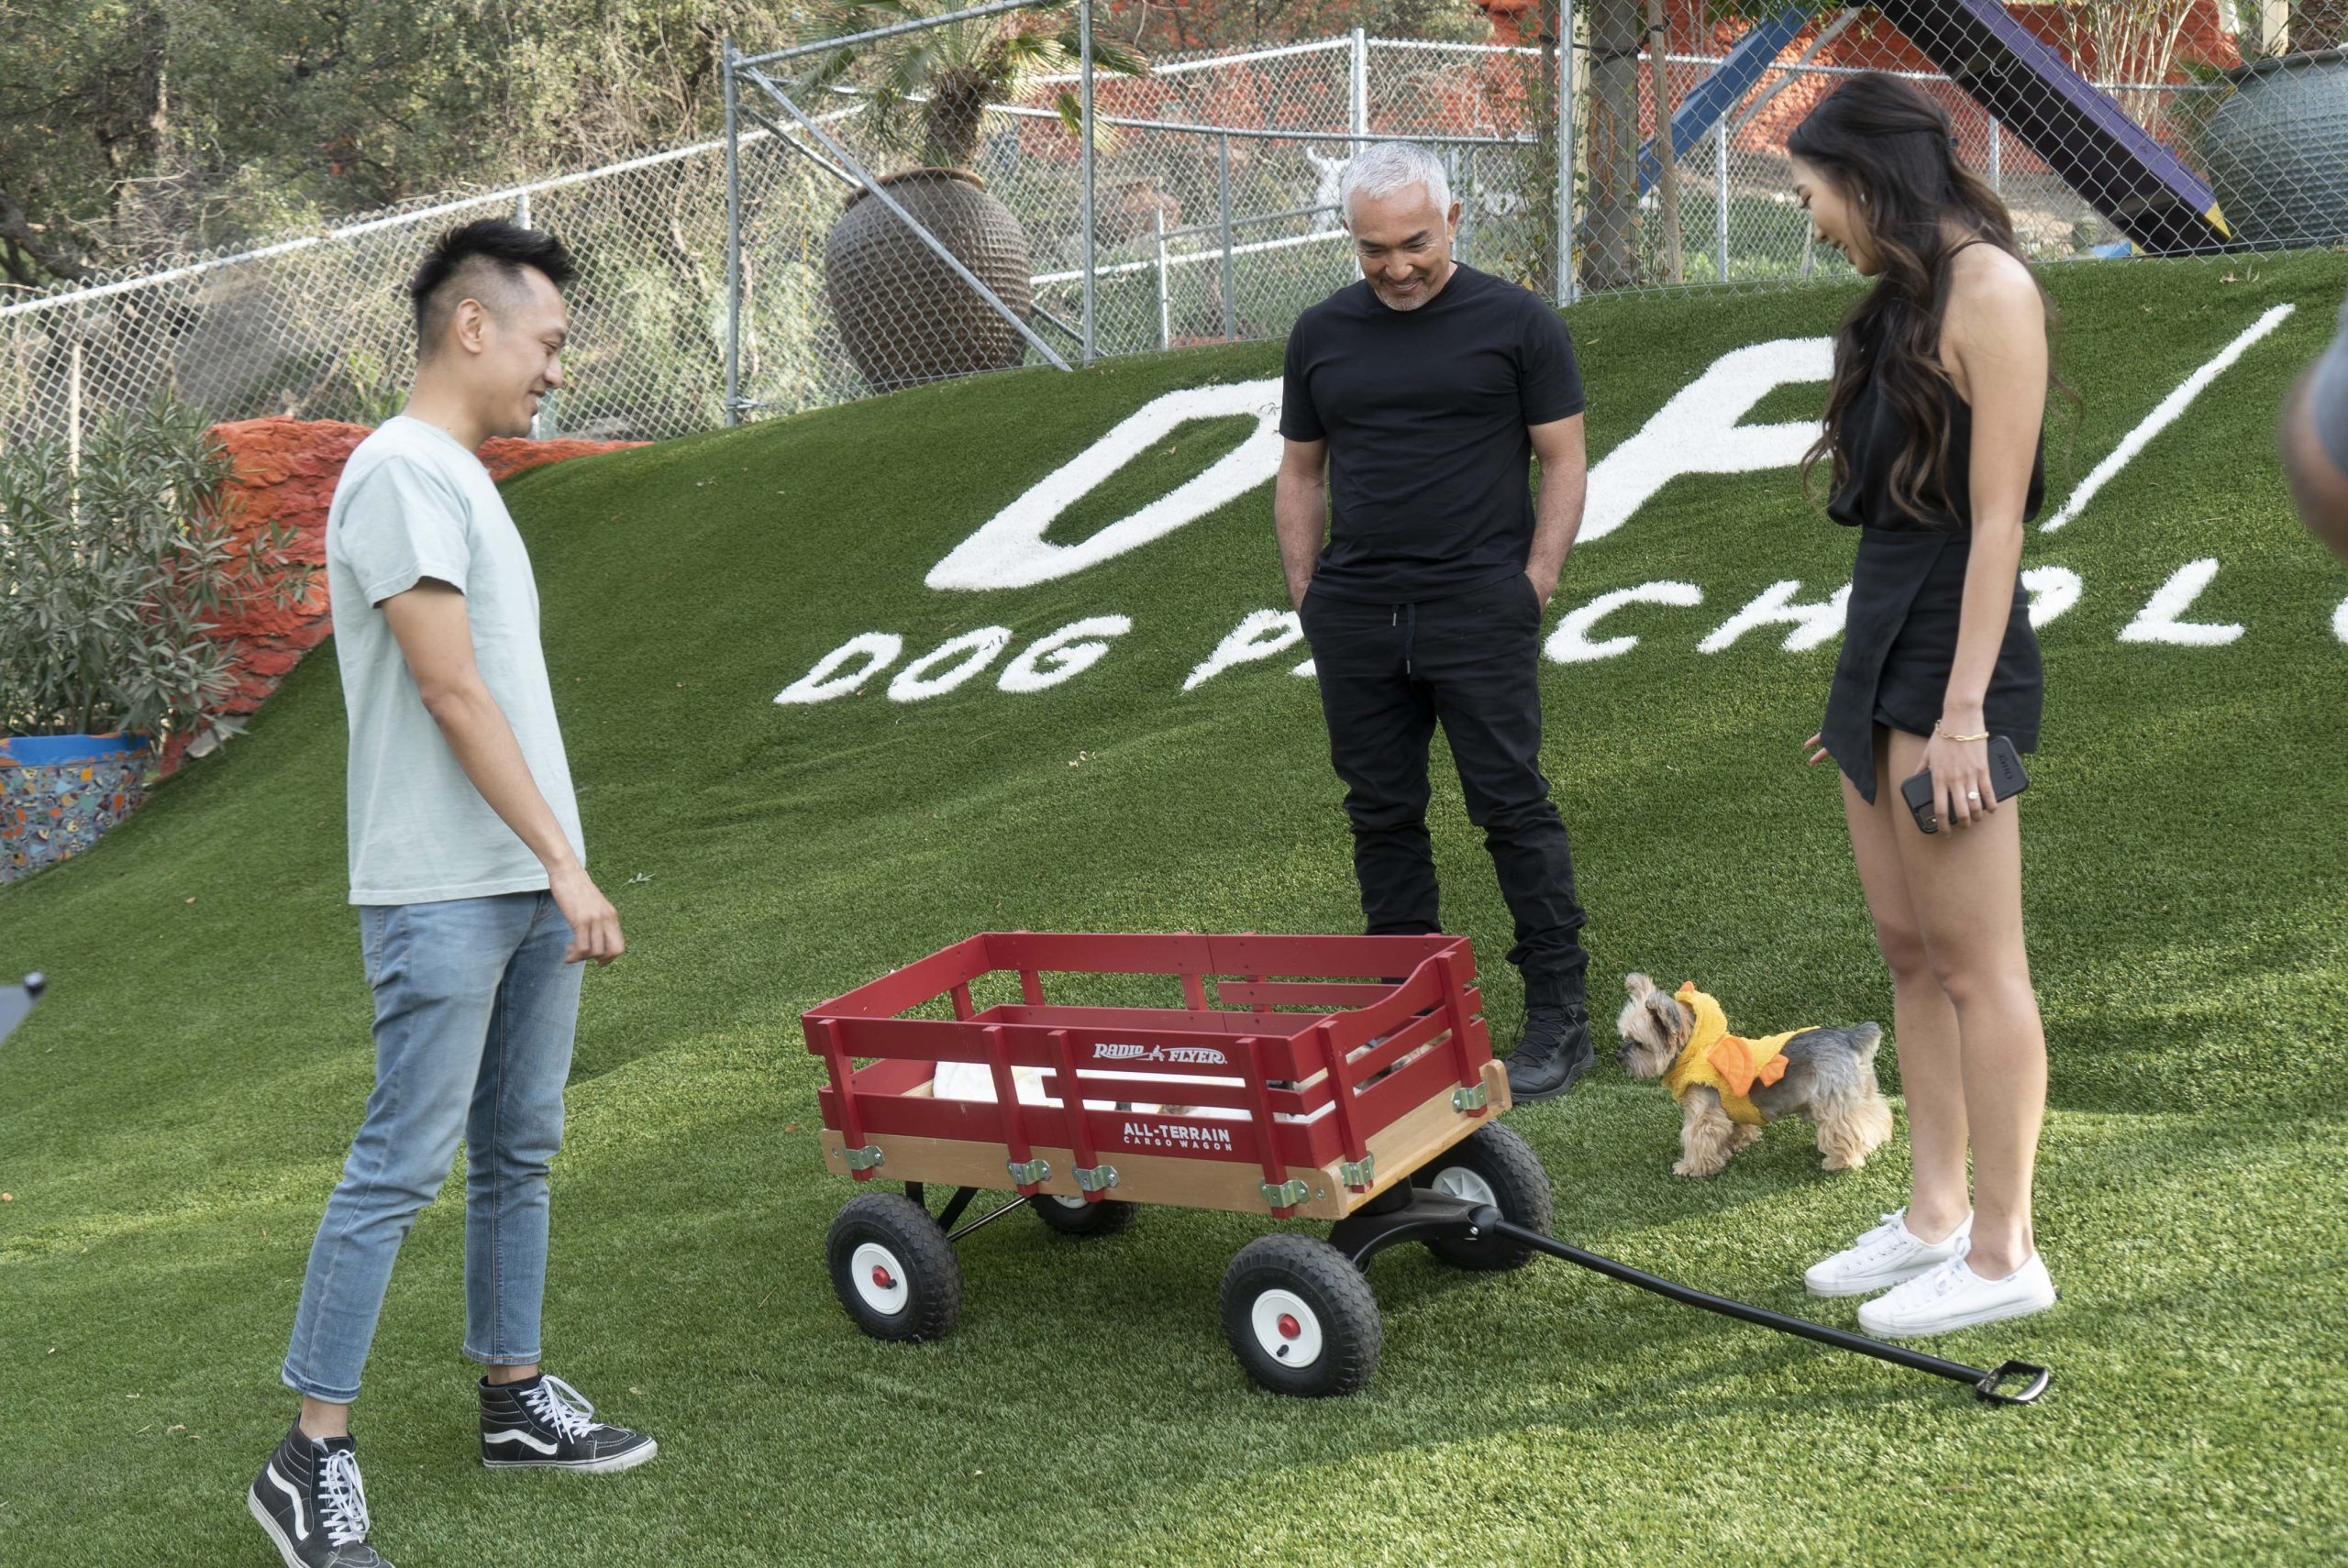 The Pack Is Back! Cesar Millan Returns Home to National Geographic in New Series 'Cesar's Way' (wt)